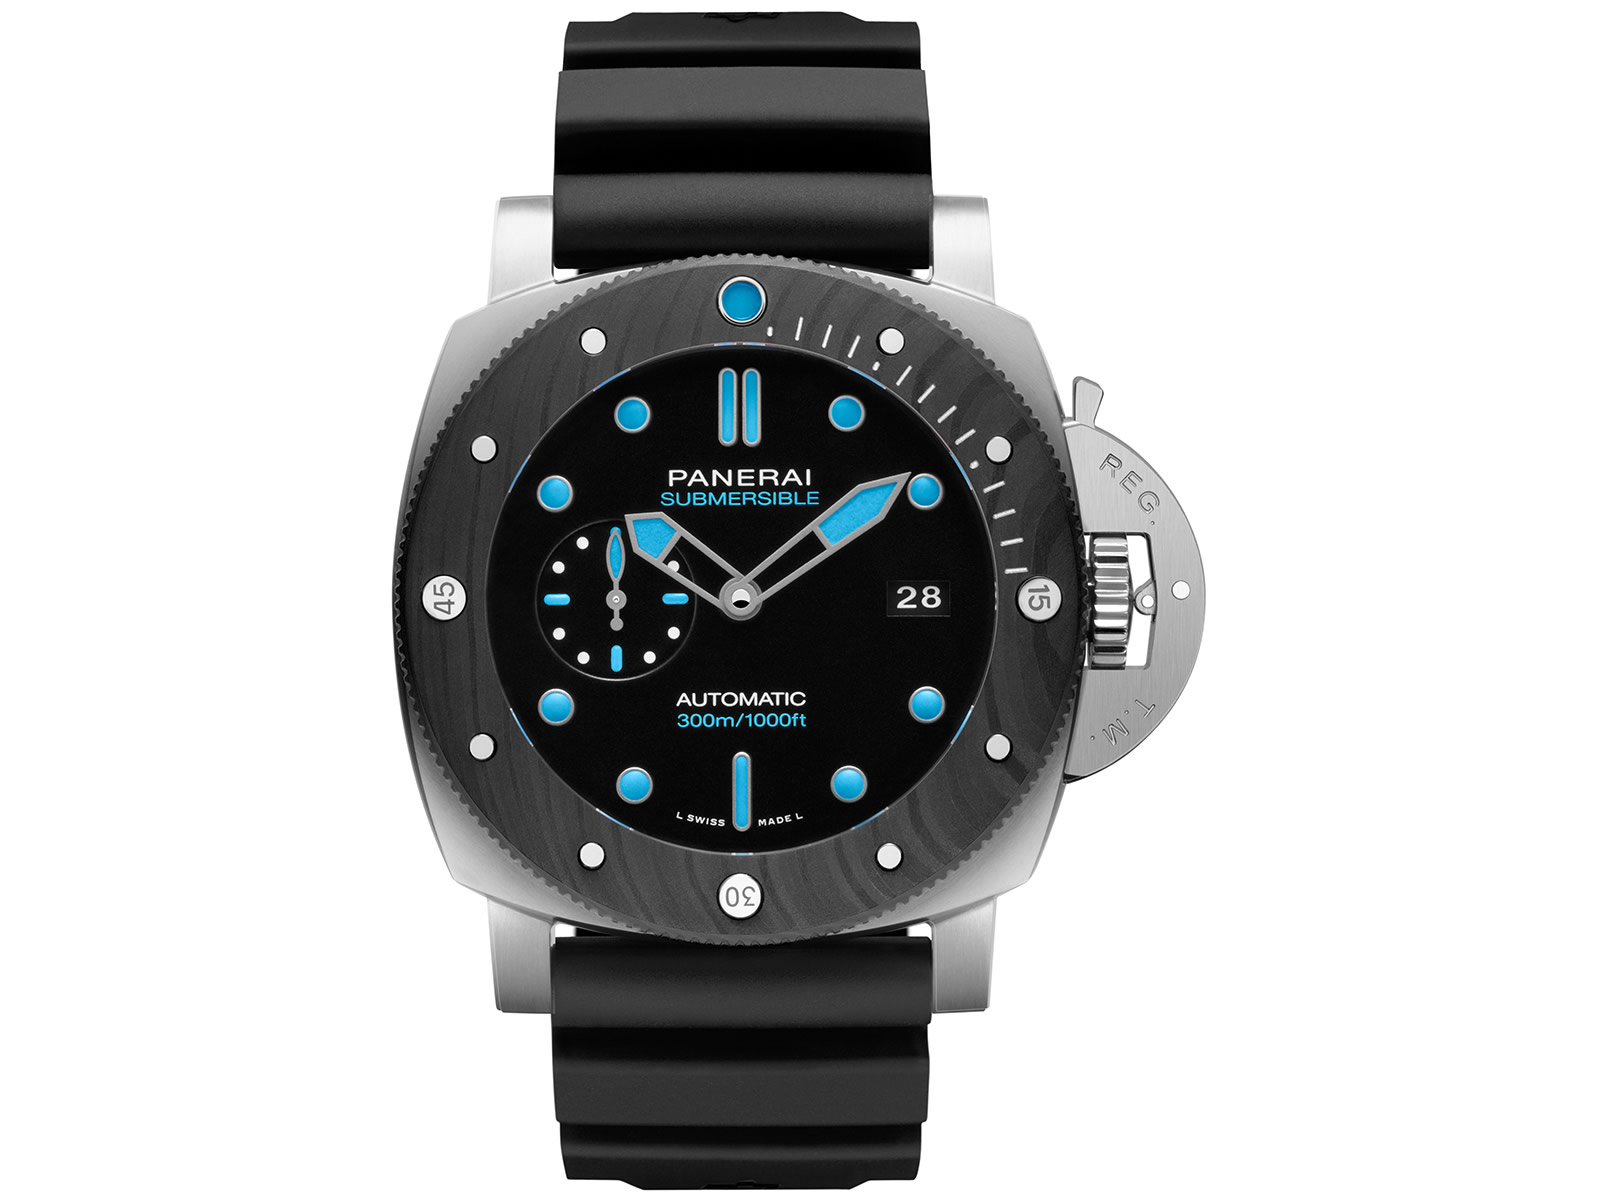 pam00799-officine-panerai-submersible-bmg-tech-47mm-6-.jpg